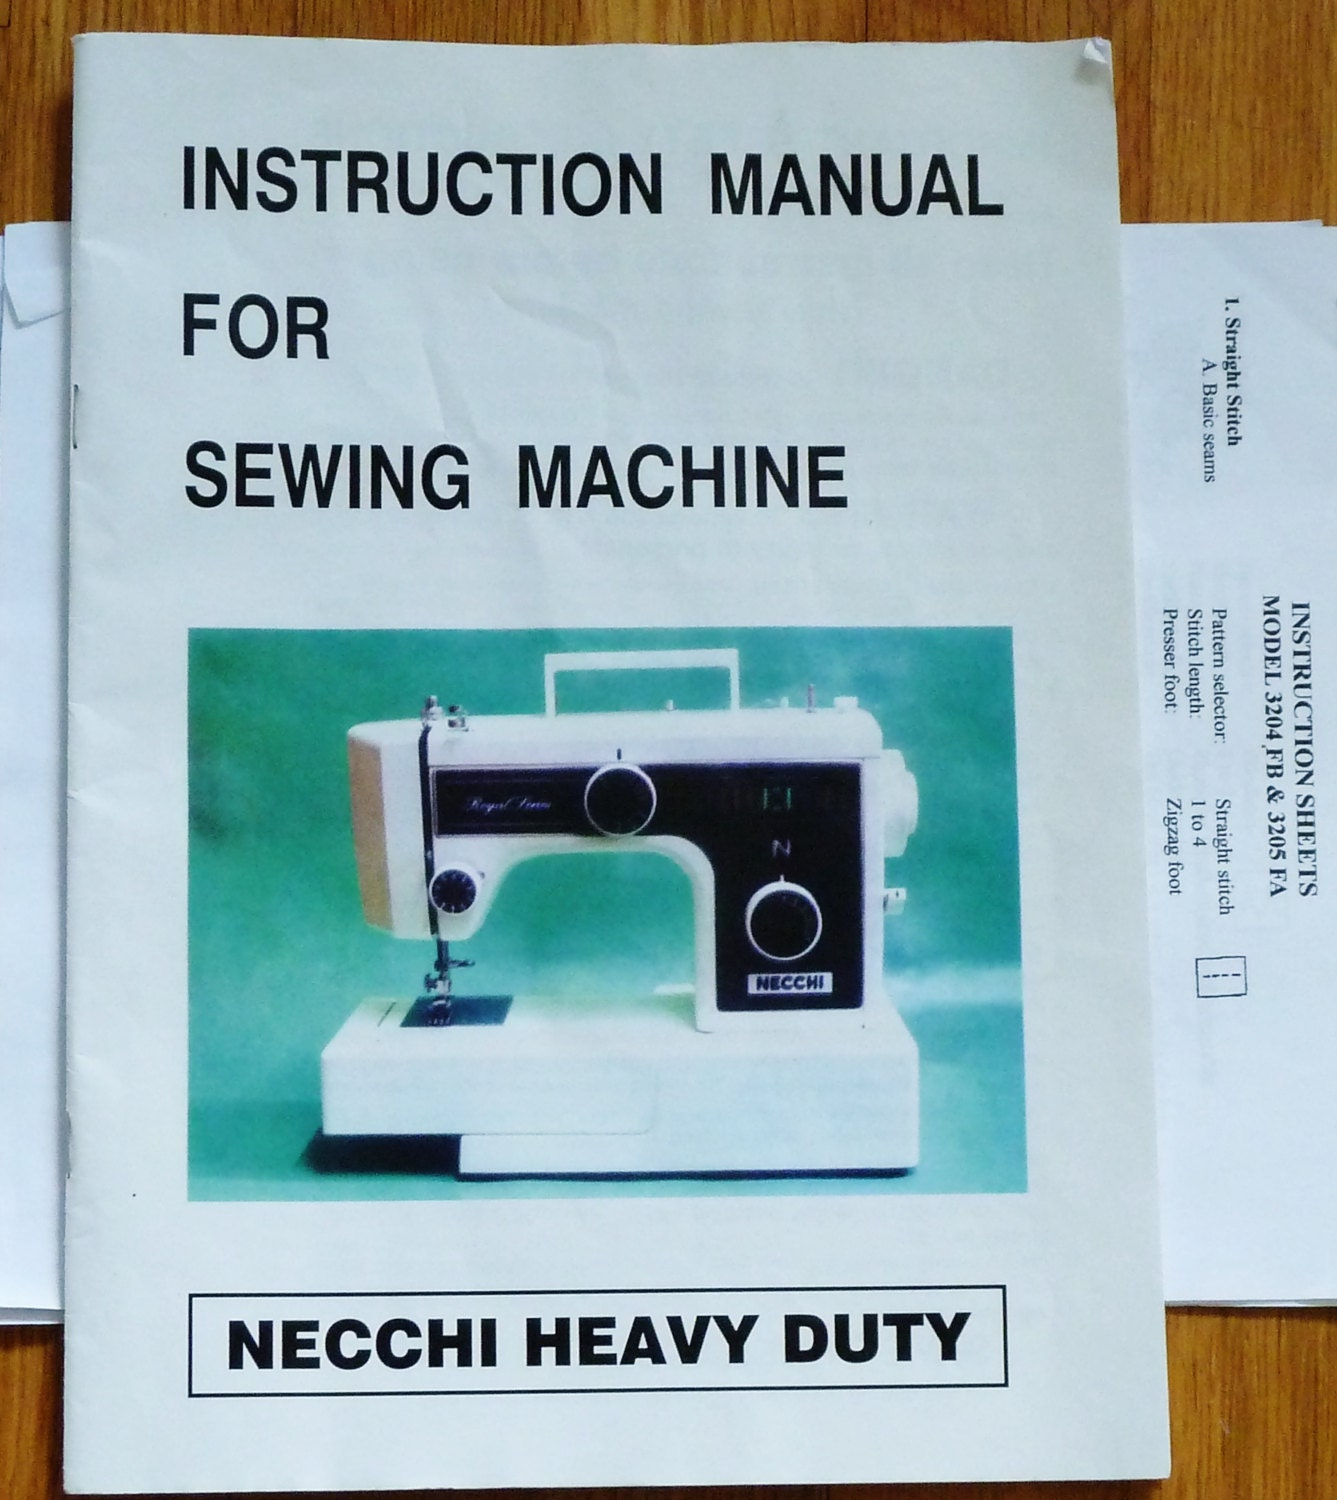 download manual for serger etsy full pdf book items similar to white sewing machine manual. Black Bedroom Furniture Sets. Home Design Ideas